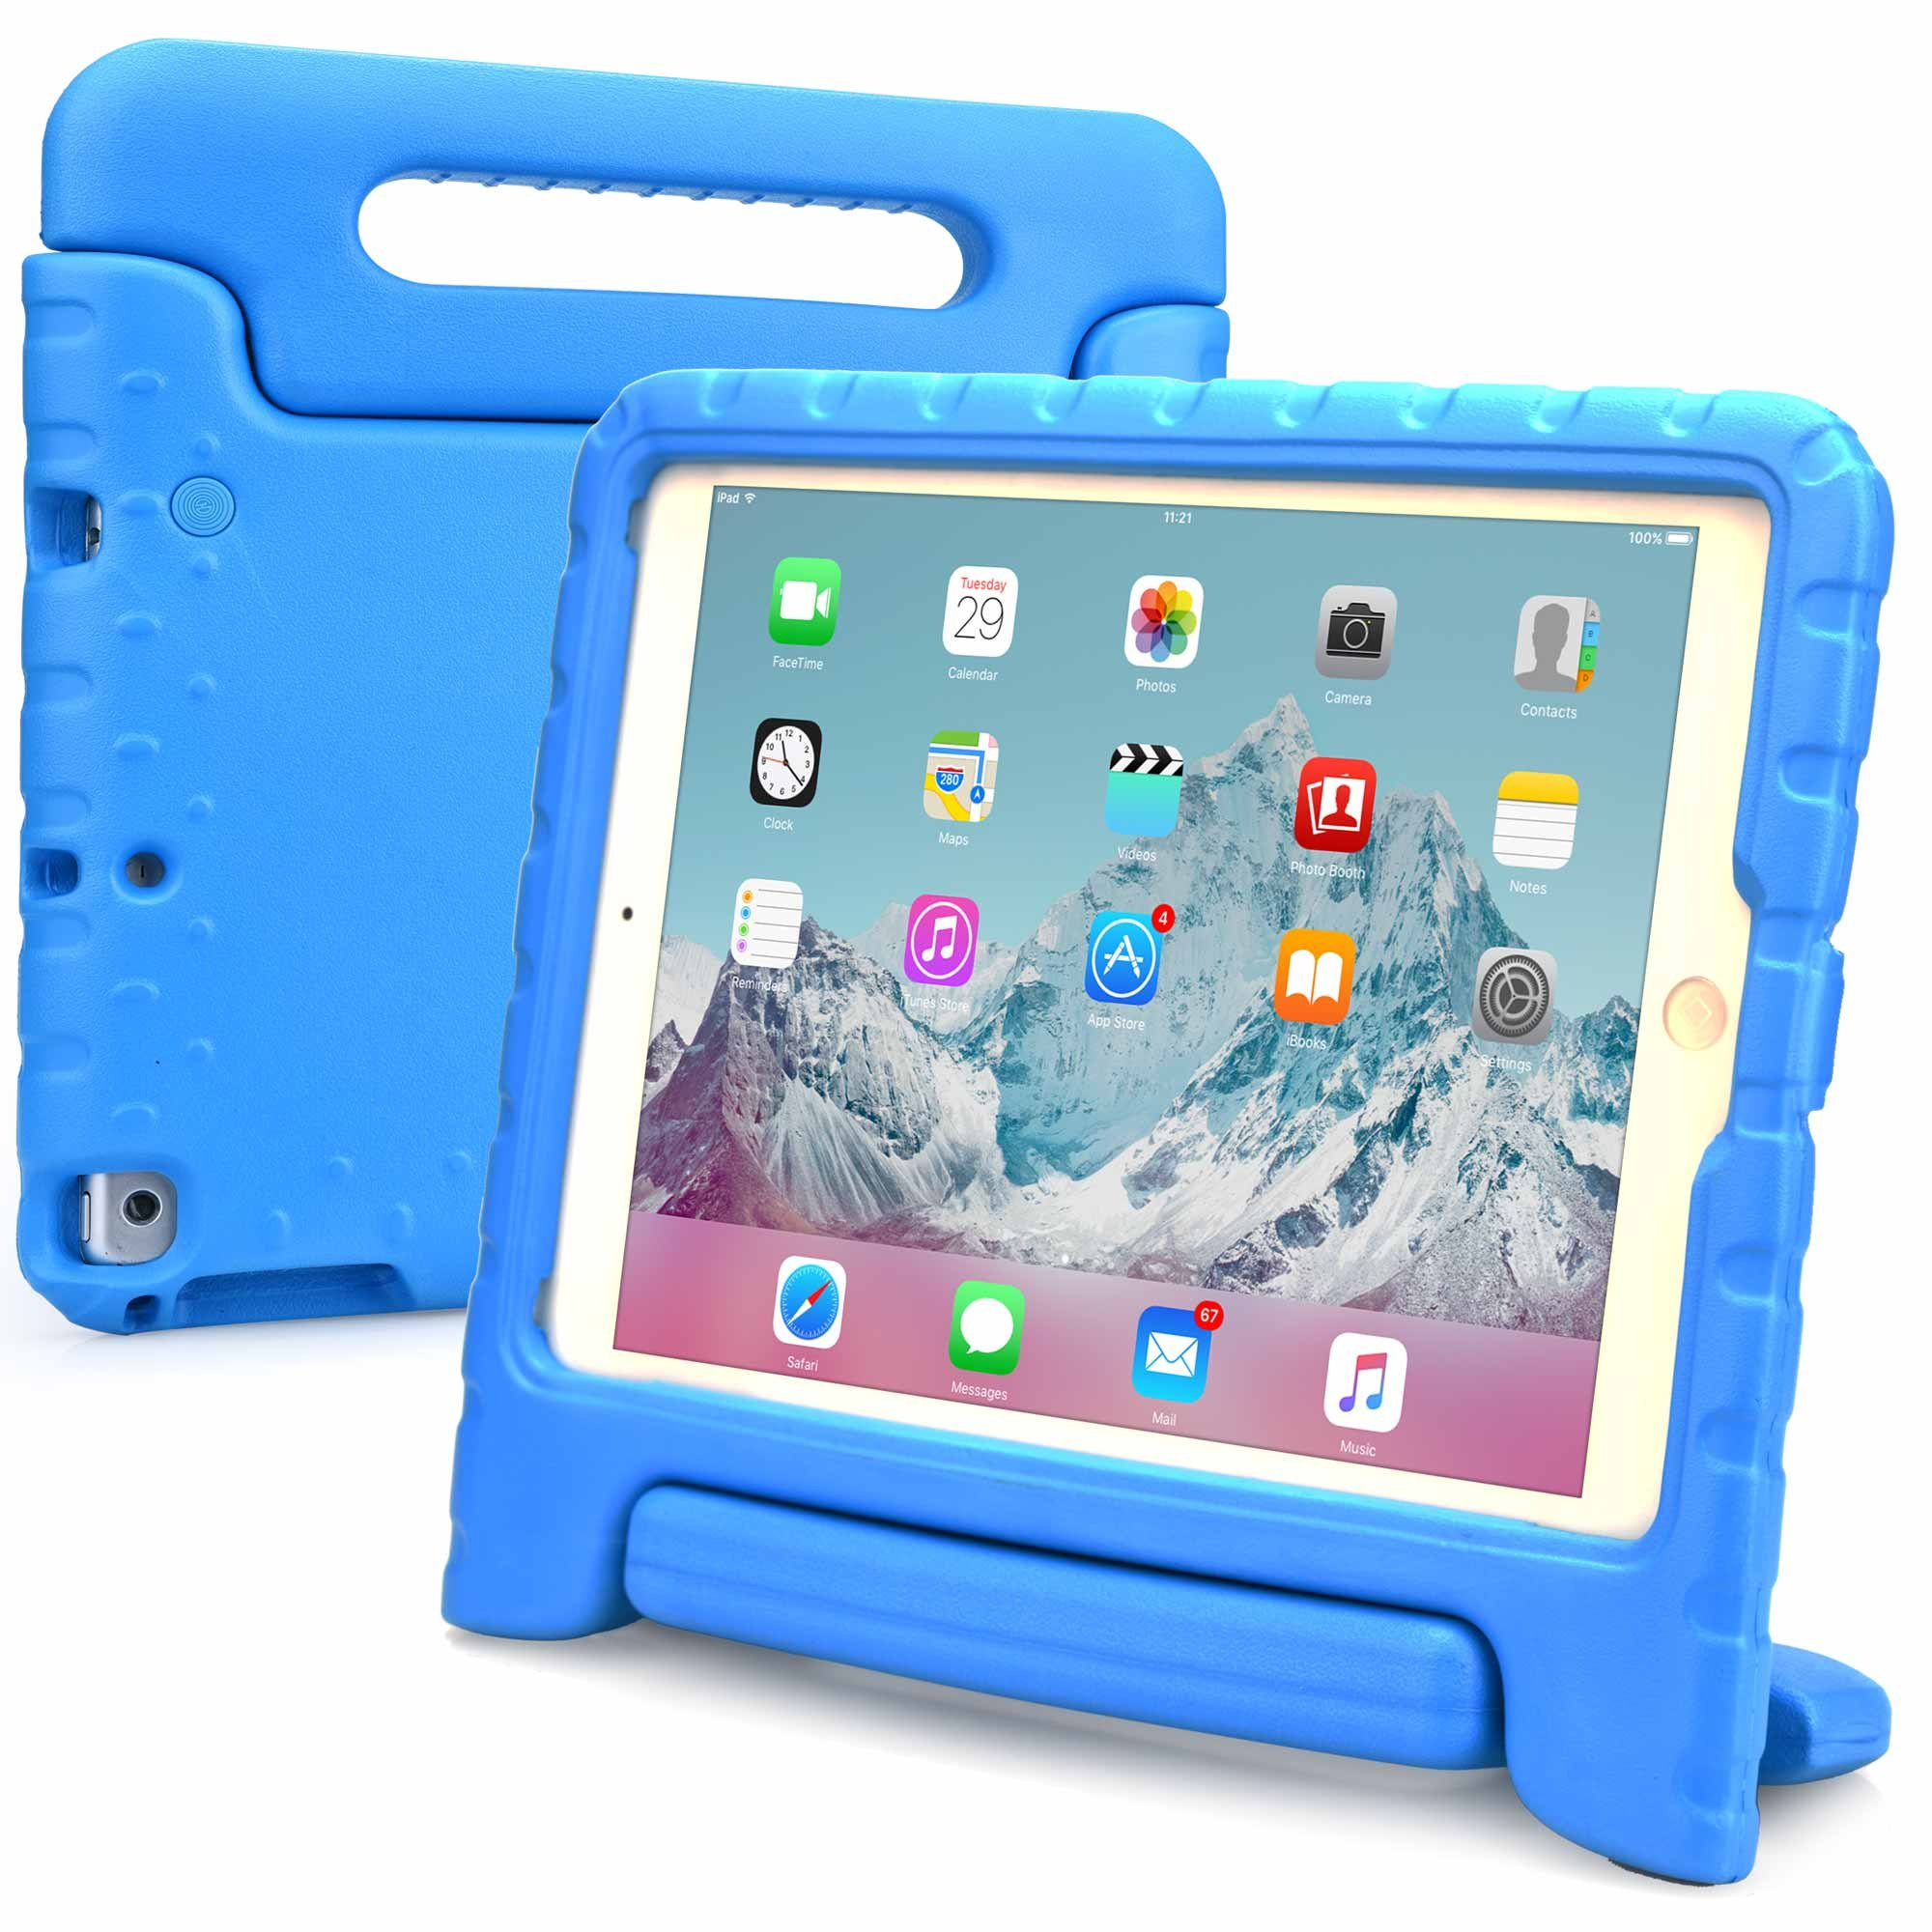 Cooper Dynamo [Rugged Kids Case] Protective Case for iPad Air 1   Child Proof Cover with Stand, Handle, Screen Protector   A1474 A1475 A1476 (Blue)